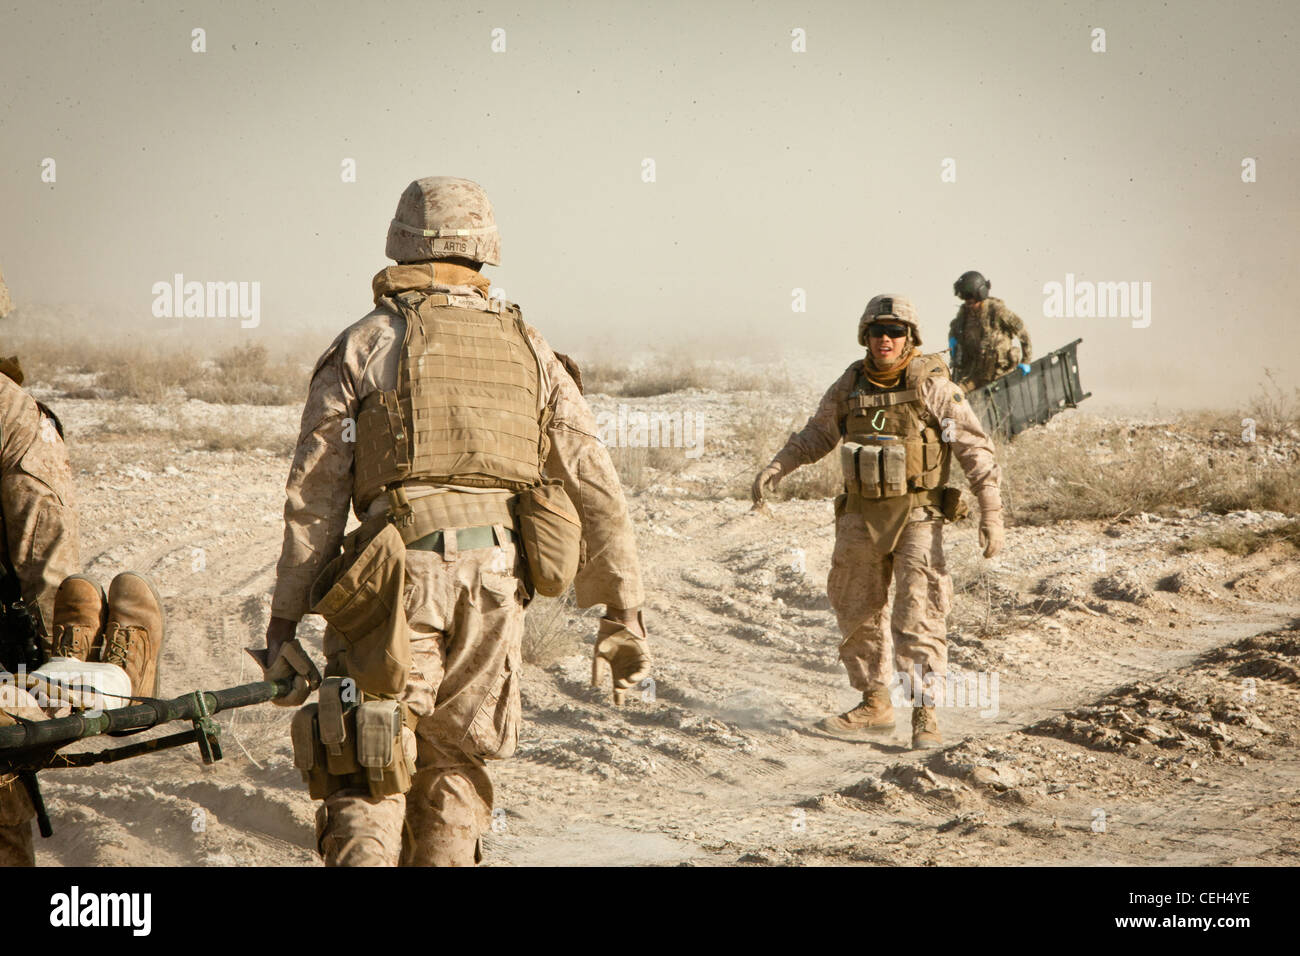 Petty Officer Third Class Michael Soto, the corpsman for Bridge Platoon, Alpha Company, 9th Engineer Support Battalion, - Stock Image